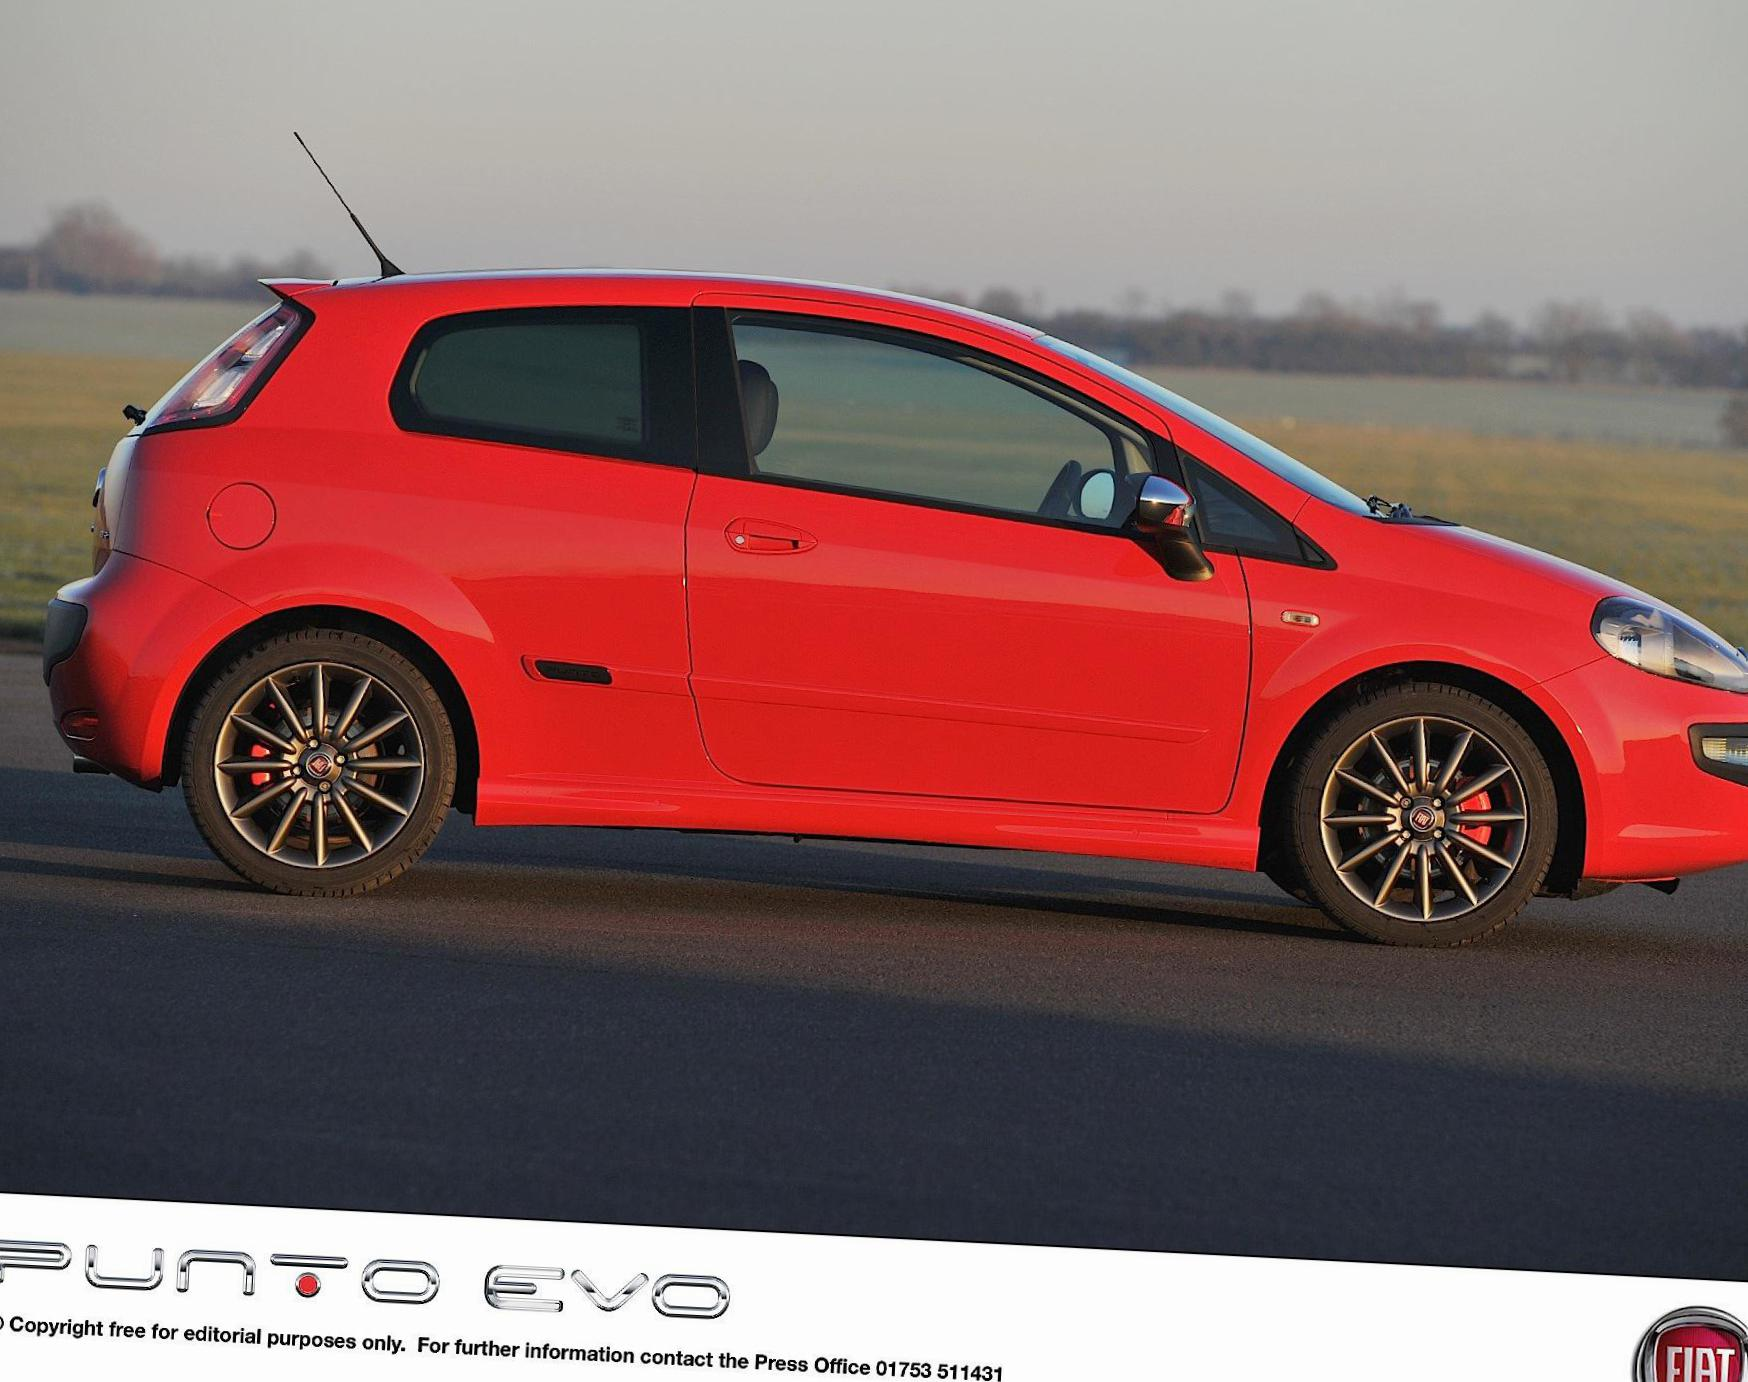 Fiat Punto Evo 3 doors Specifications 2012